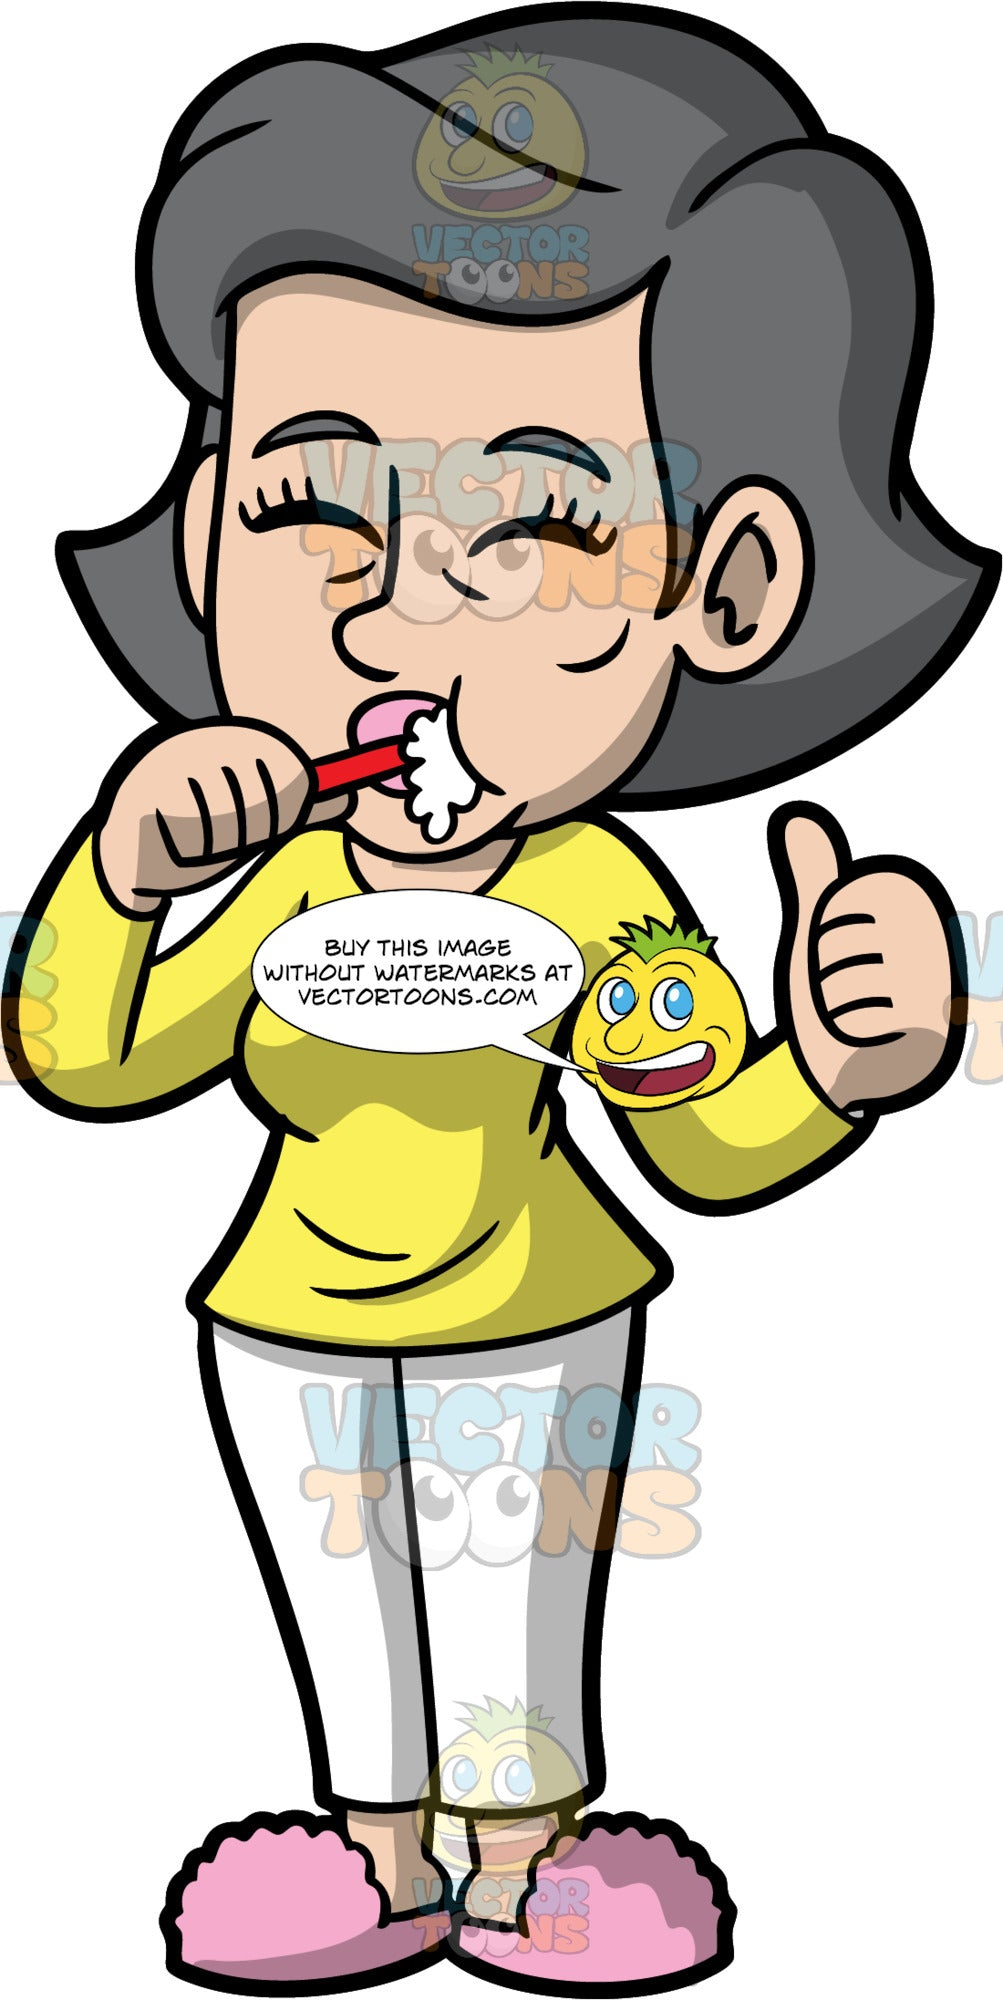 Mary Brushing Her Teeth At Night. A mature woman wearing white pajama pants, a long sleeve yellow shirt, and pink slippers, closing her eyes while brushing her teeth